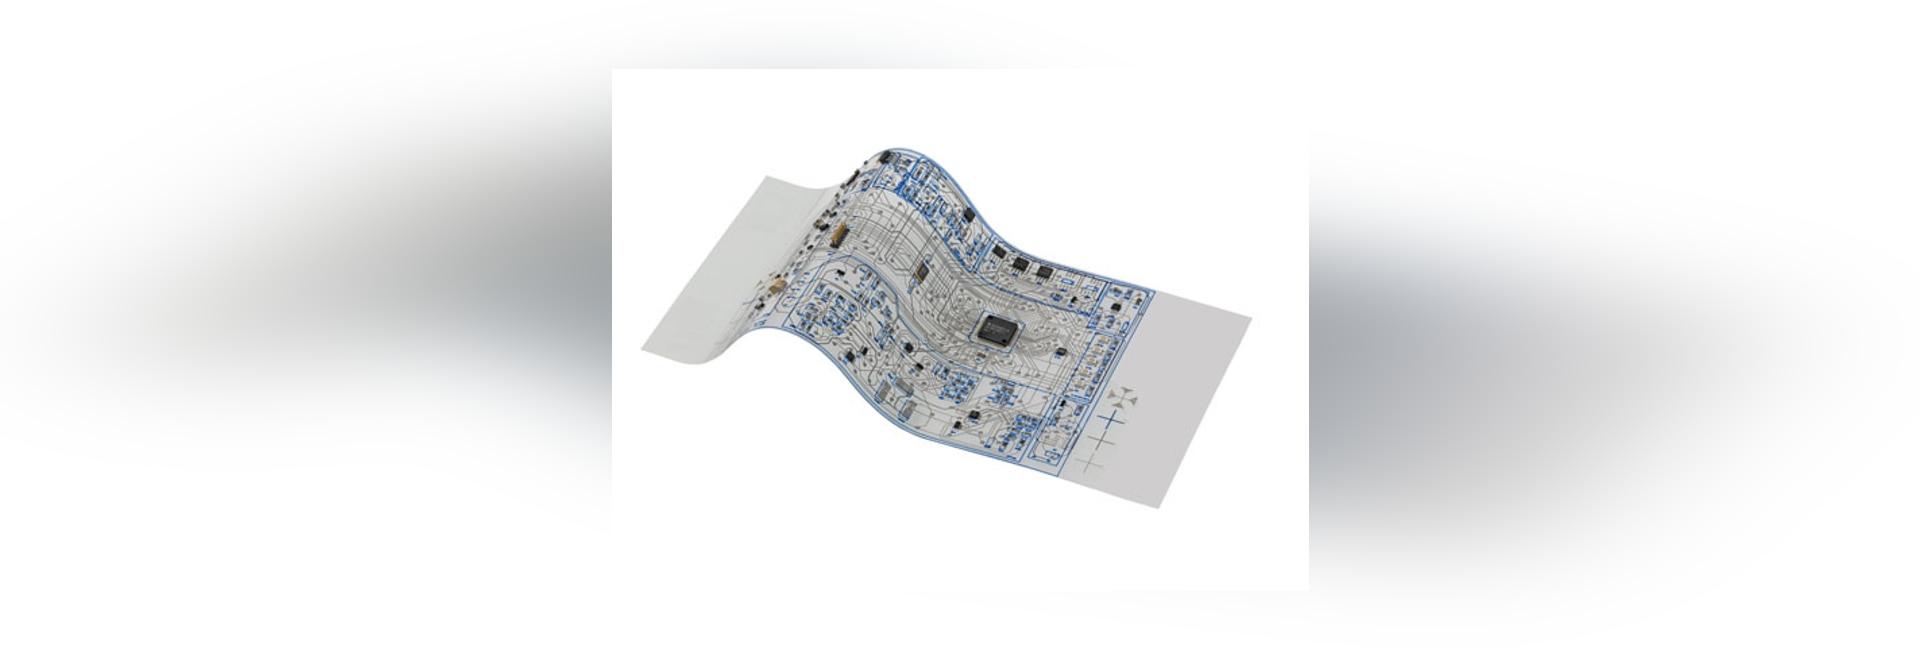 Wearables Bend Electronics Market Toward Flexible Circuits 700 Printed Circuit Boards Trends This Sensor System From Molex Integrates Conductive And Dielectric Materials Along With Traditional Components